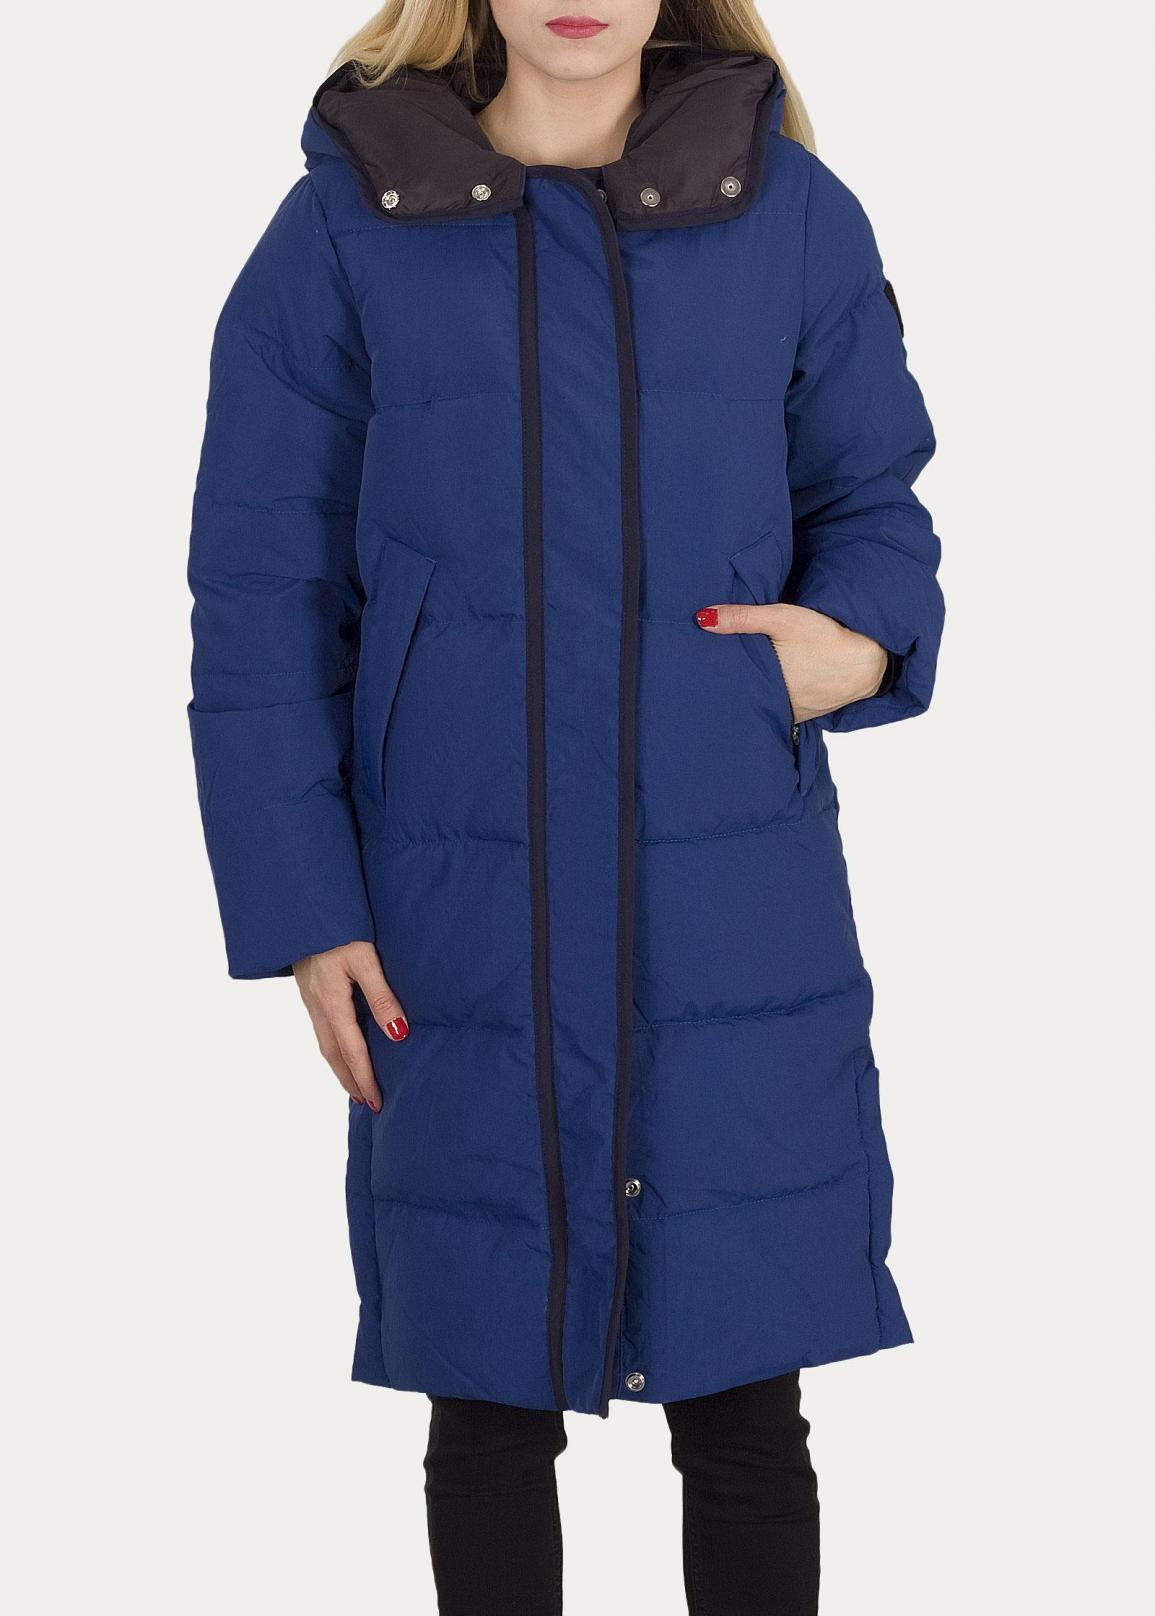 Lee® Long Puffer Jacket - Oil Blue